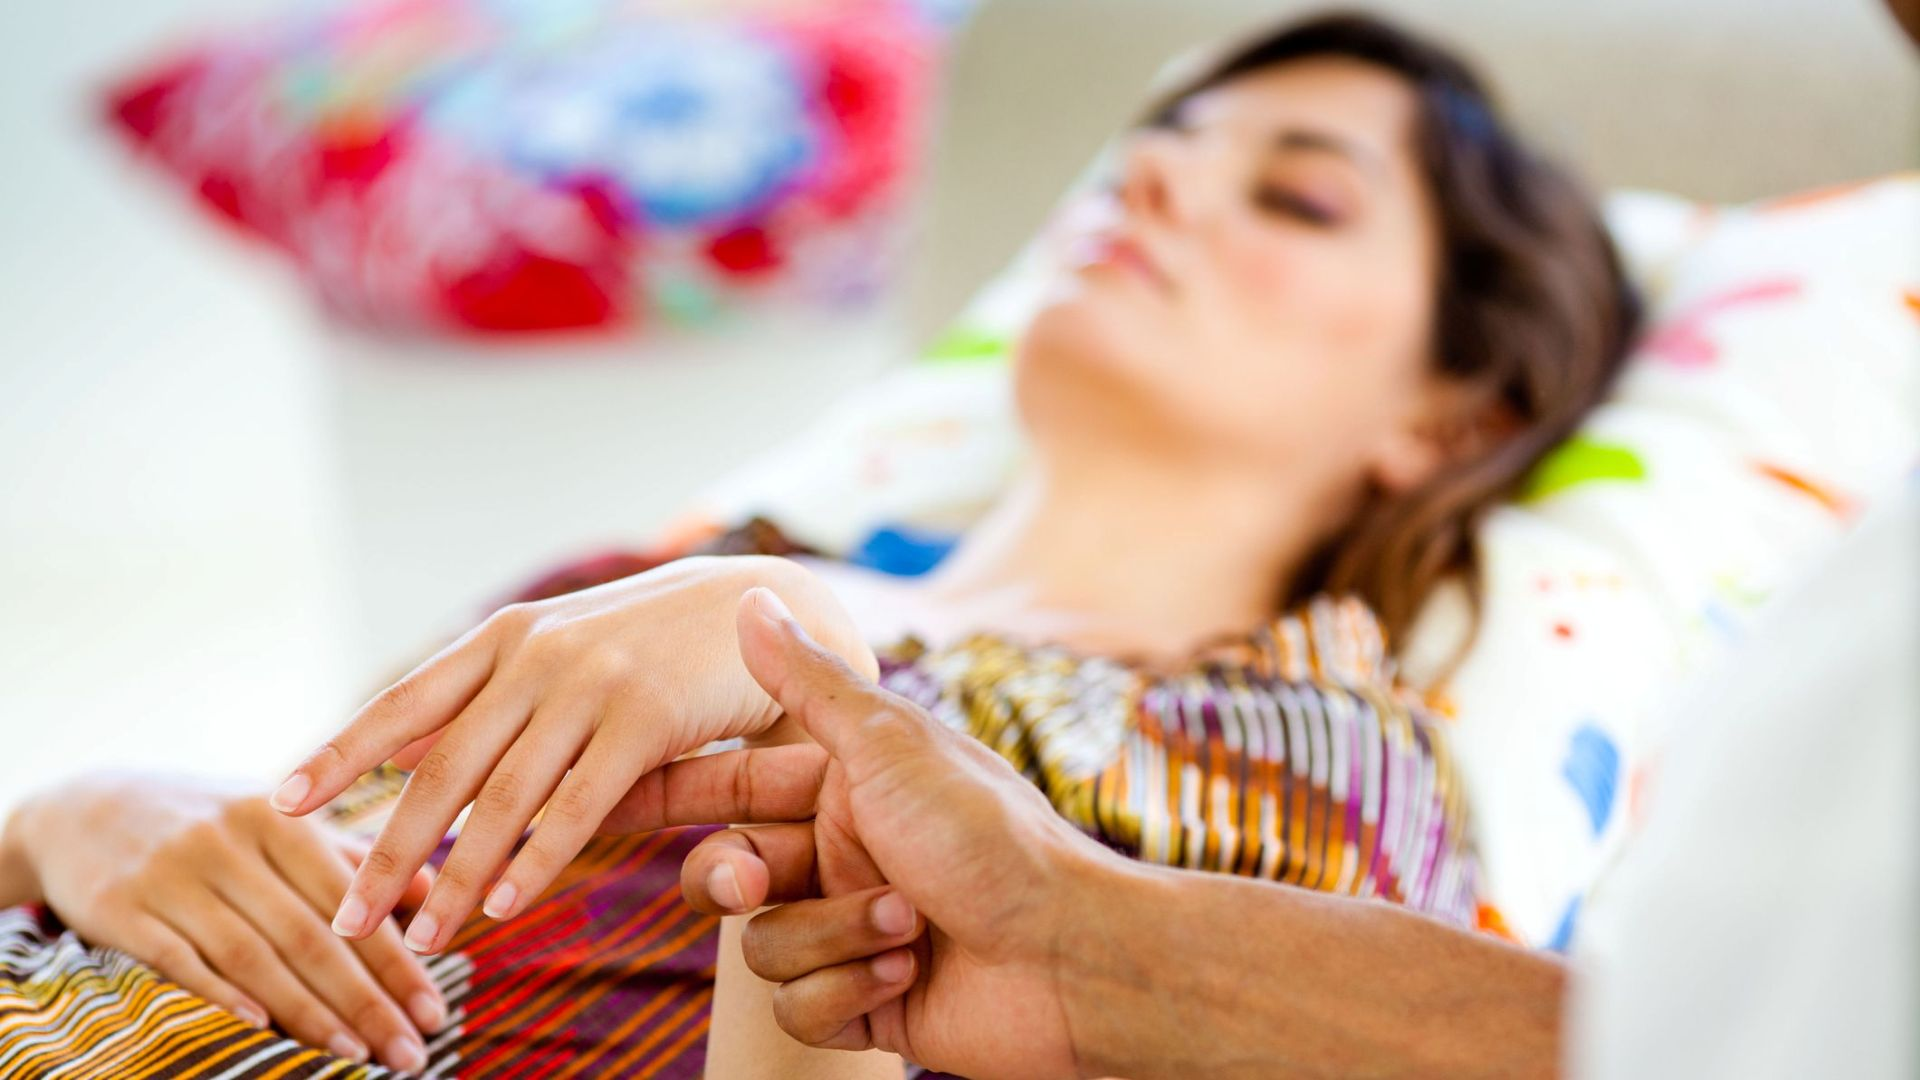 Hypnosis and Relaxation Therapies in USA